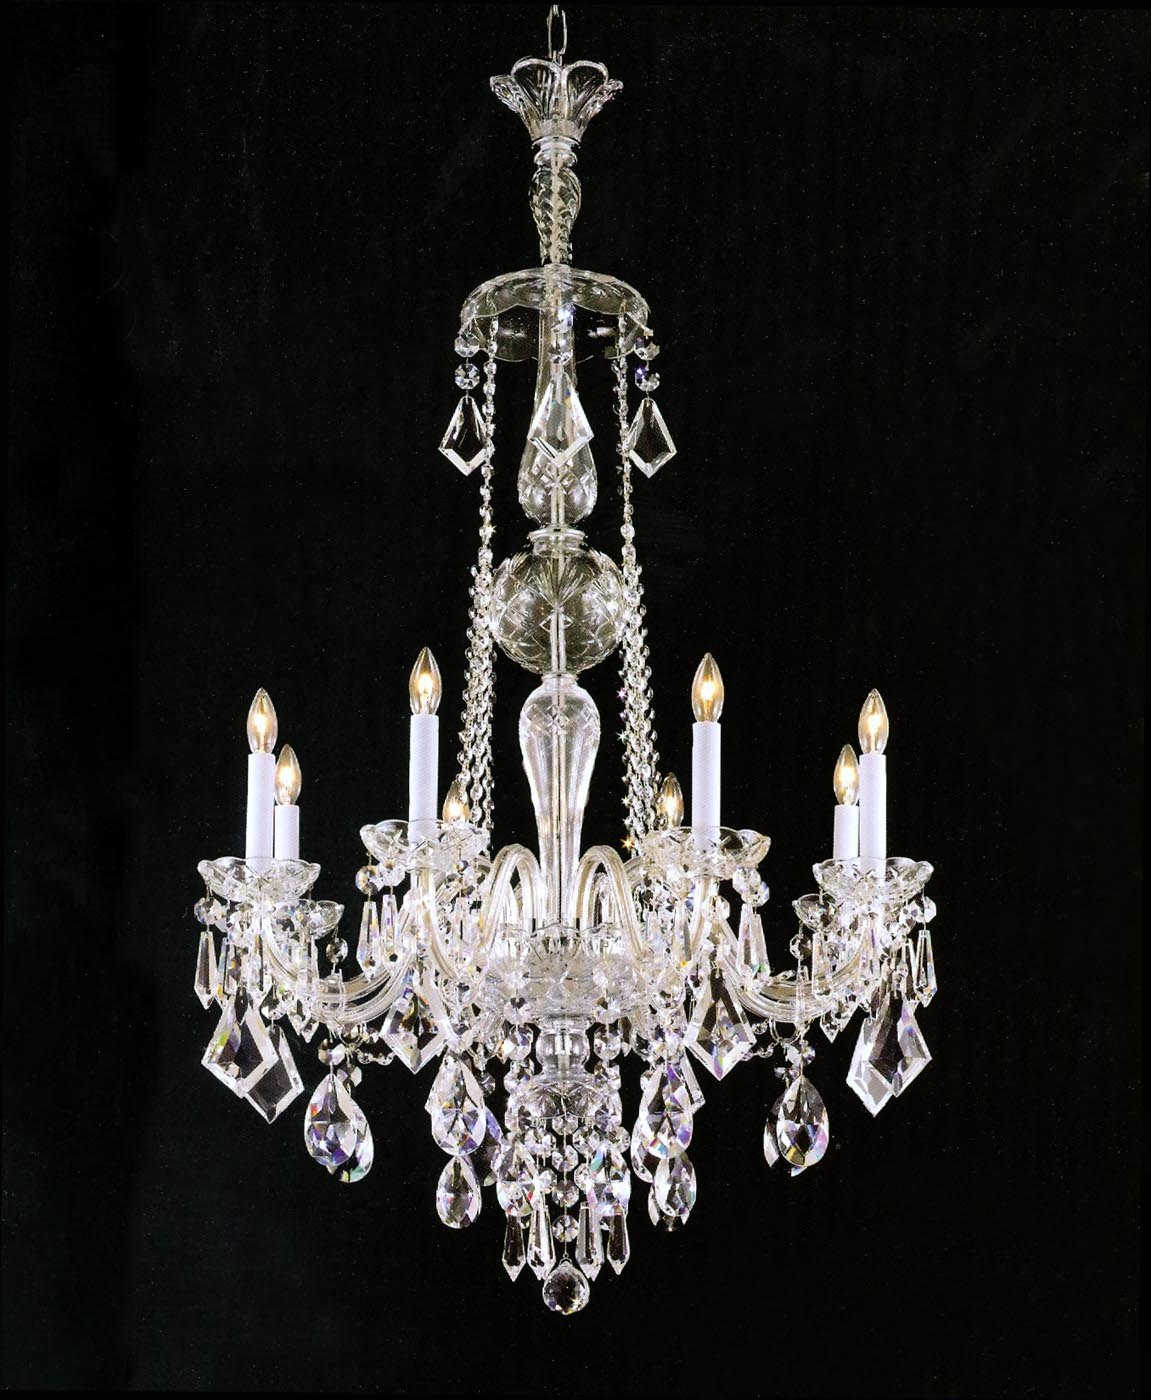 Chandeliers for your home interior design paradise crystal chandelier aloadofball Image collections